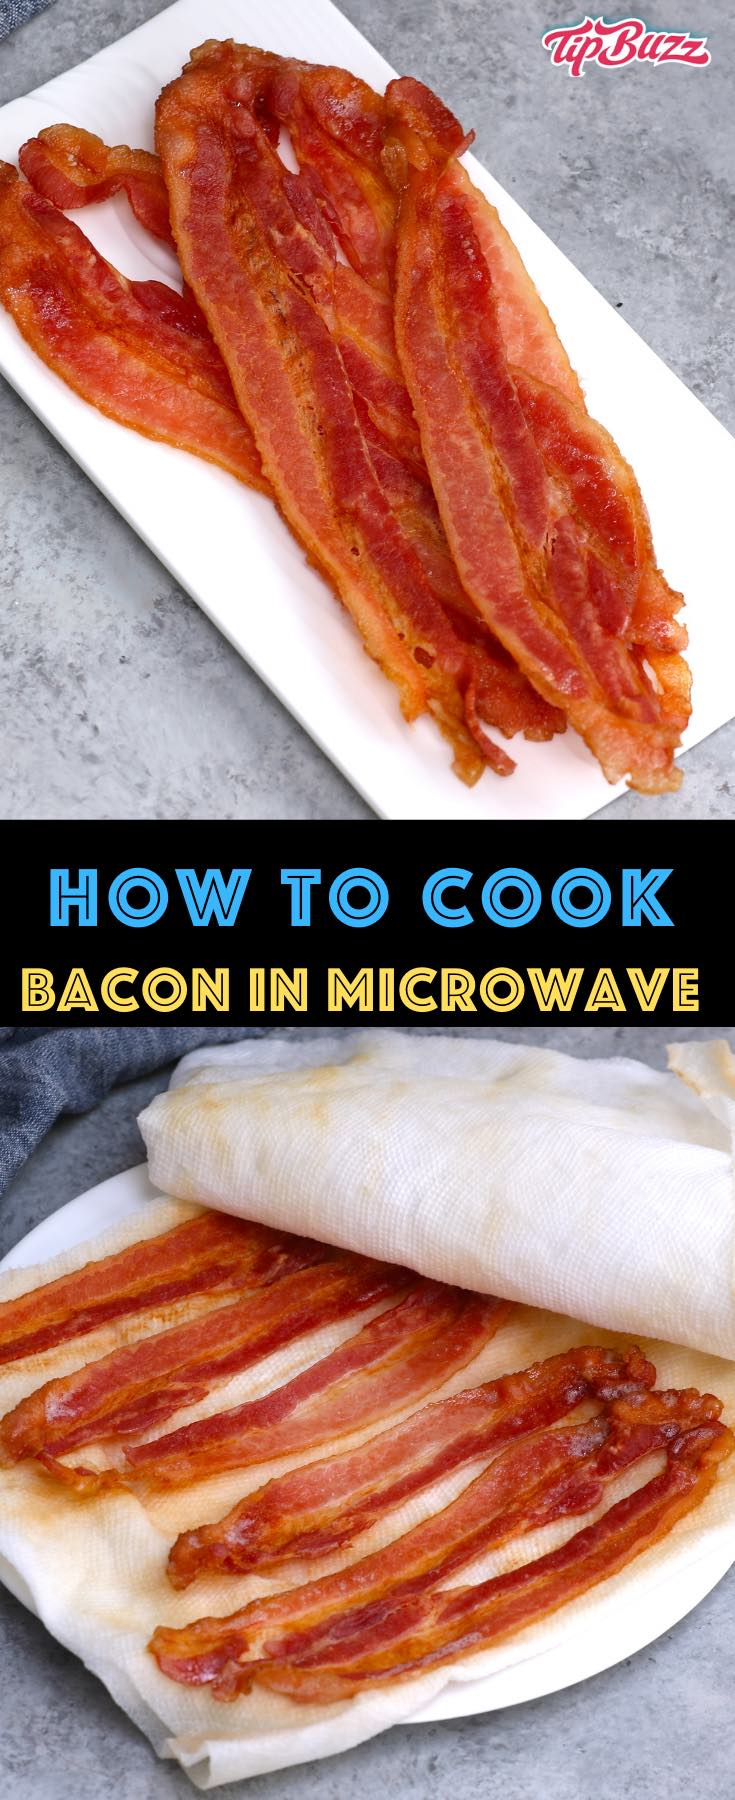 Find out how long to microwave bacon, whether you've got regular or thick-cut bacon. Learn how to cook bacon using a microwave bacon cooker or just paper towels and a plate. It's fast and produces delicious crispy bacon with easy cleanup!